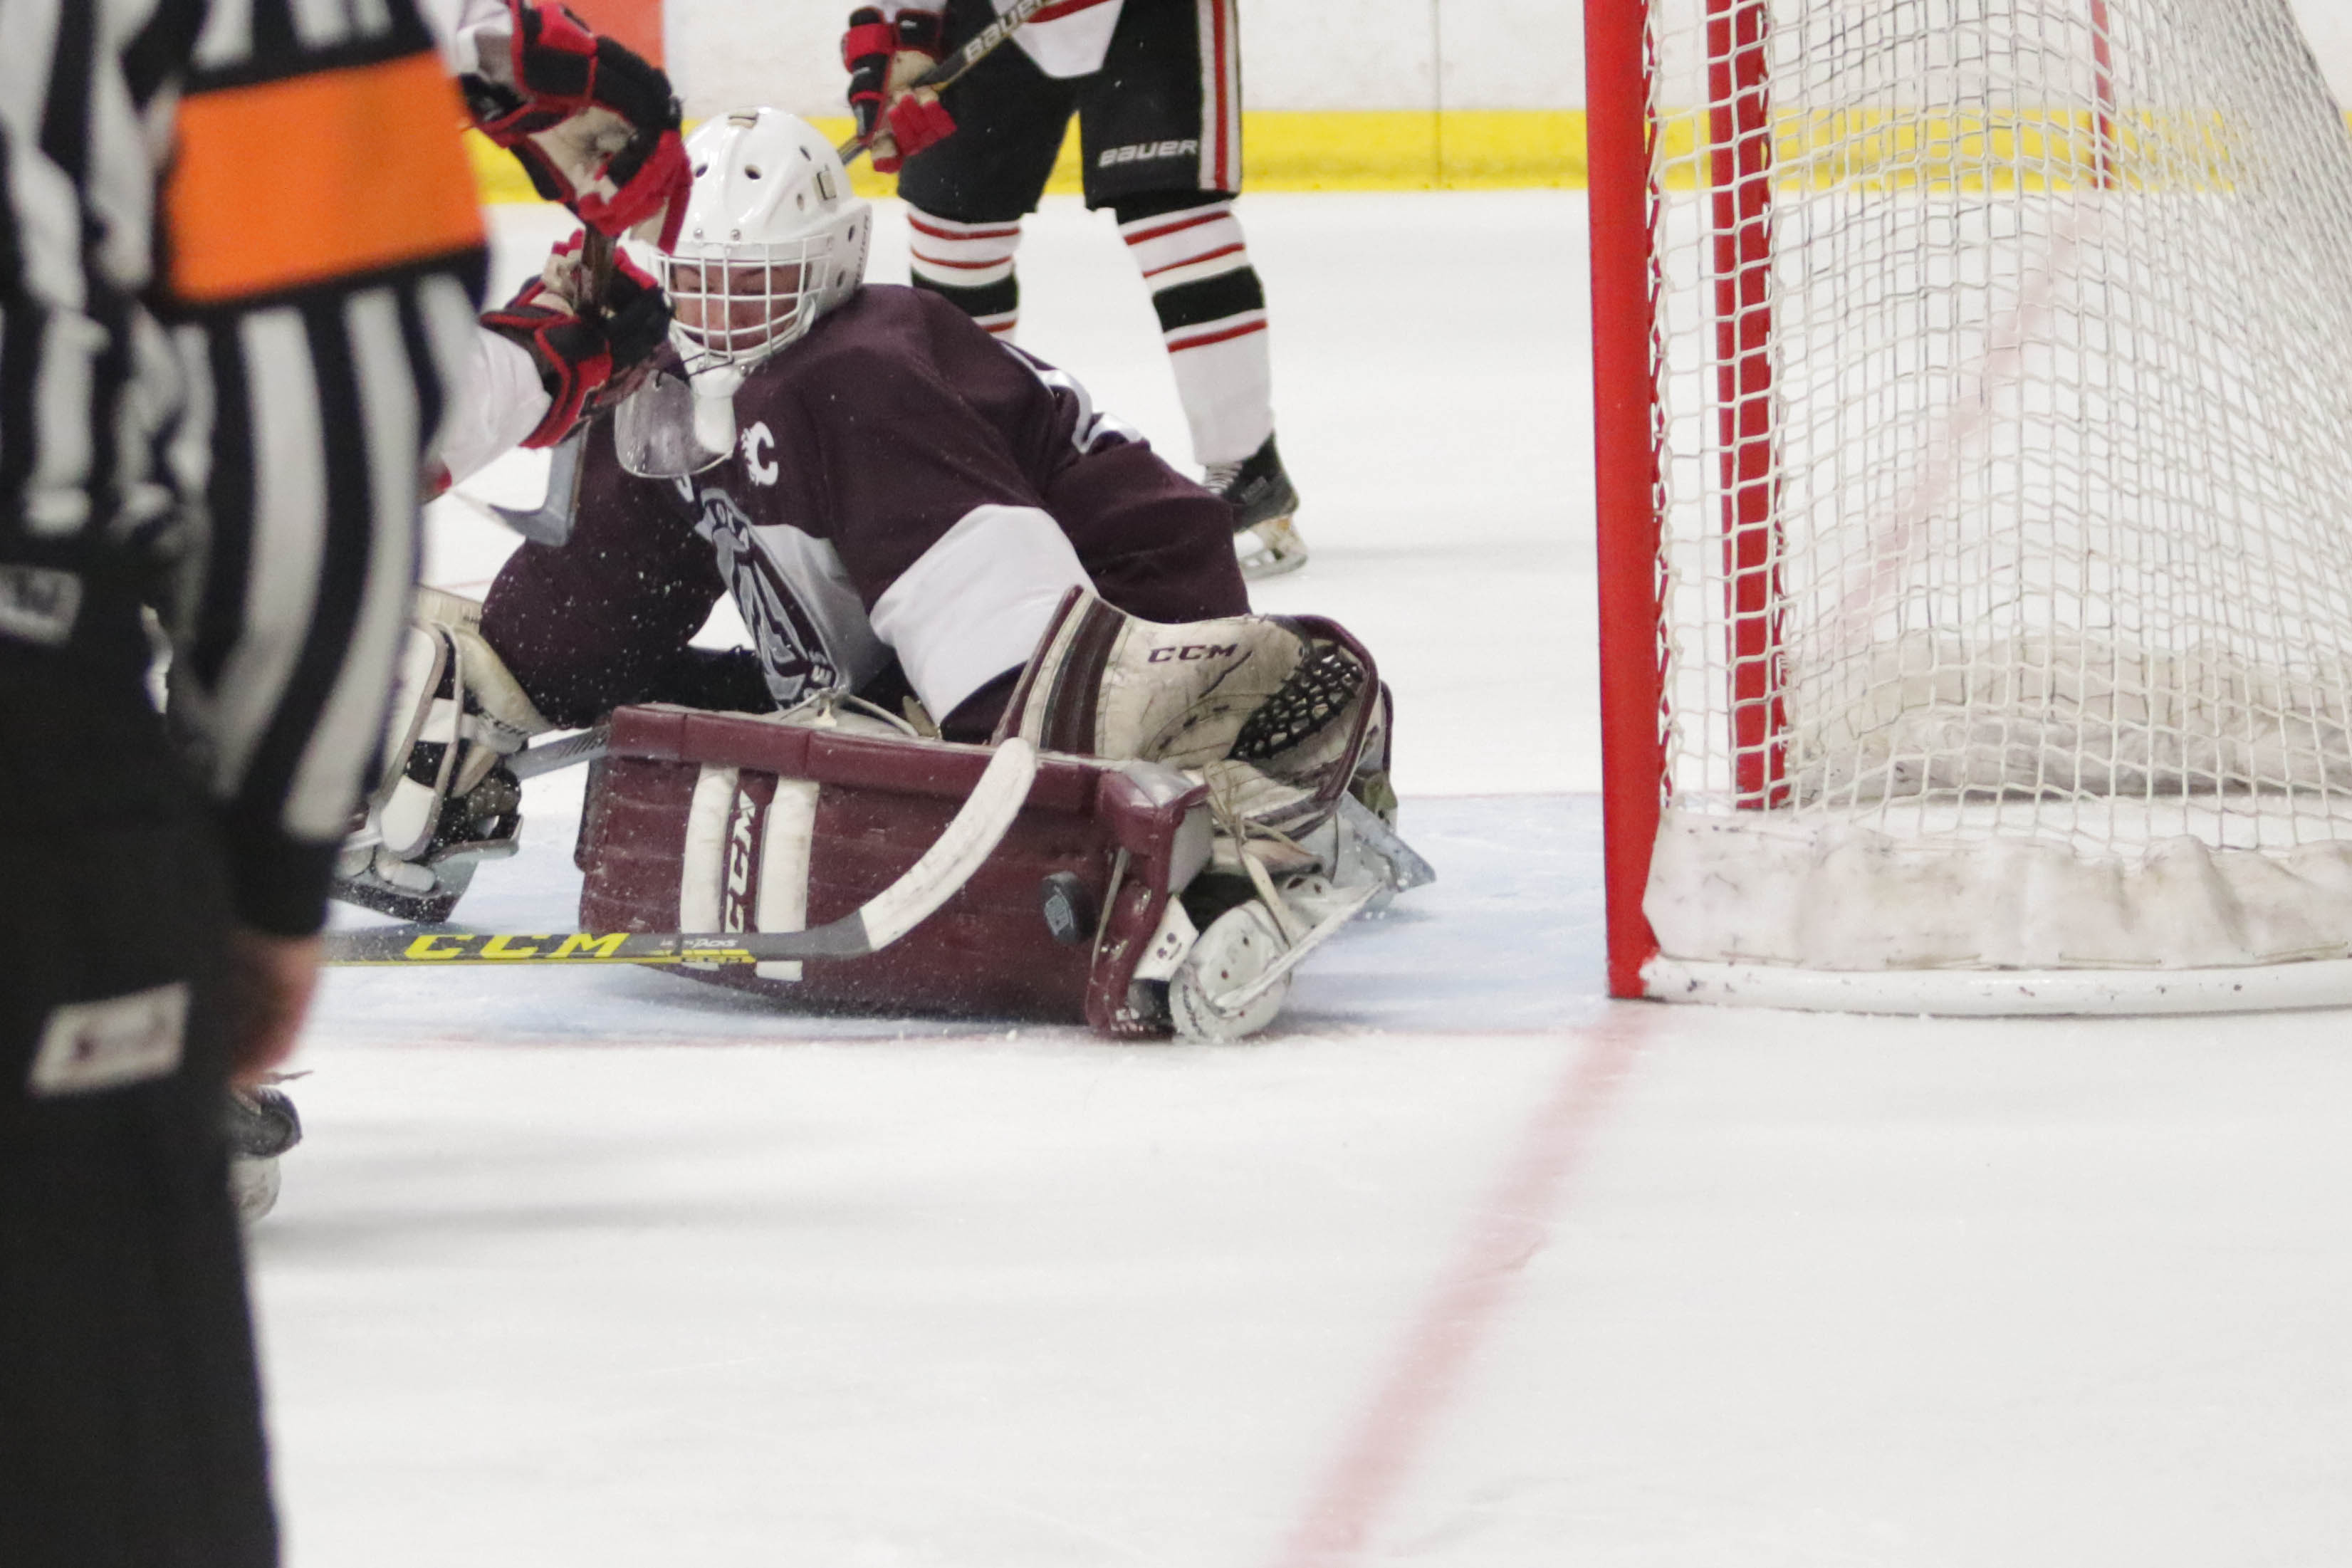 MN H.S.: Anoka Avenges Losses, Upsets Centennial To Advance To Section Title Game